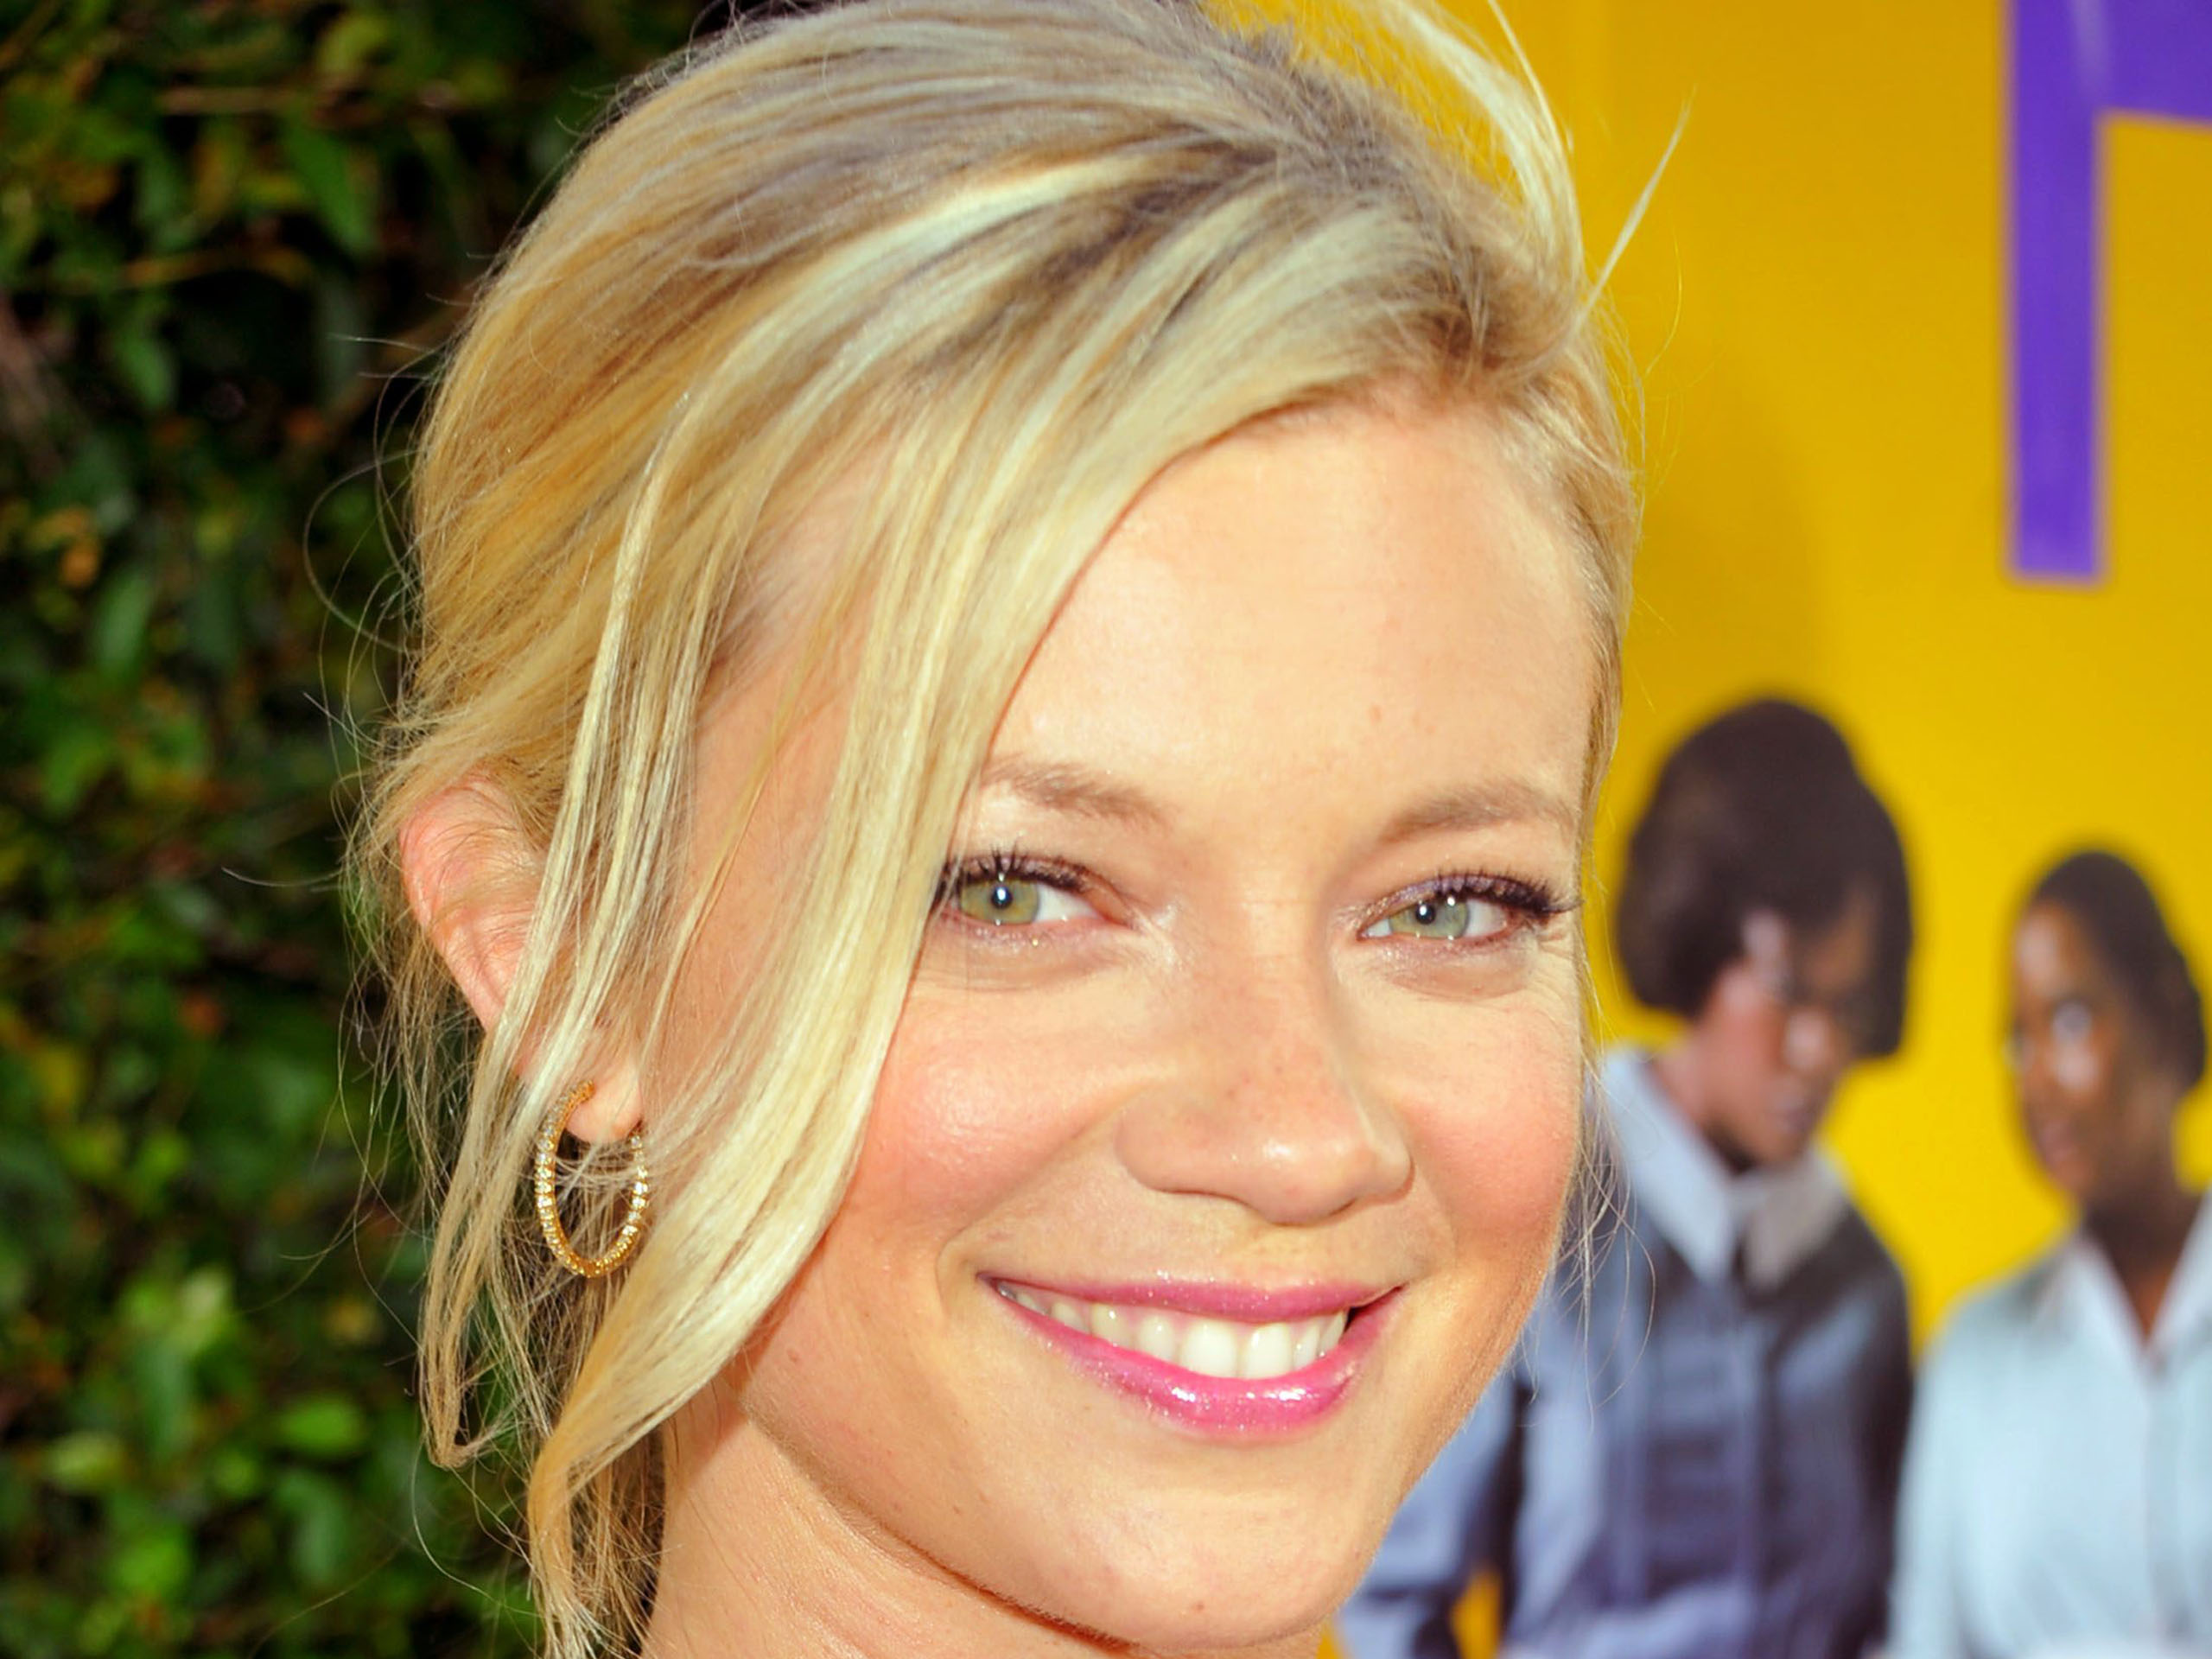 amy smart smile wallpaper background 52131